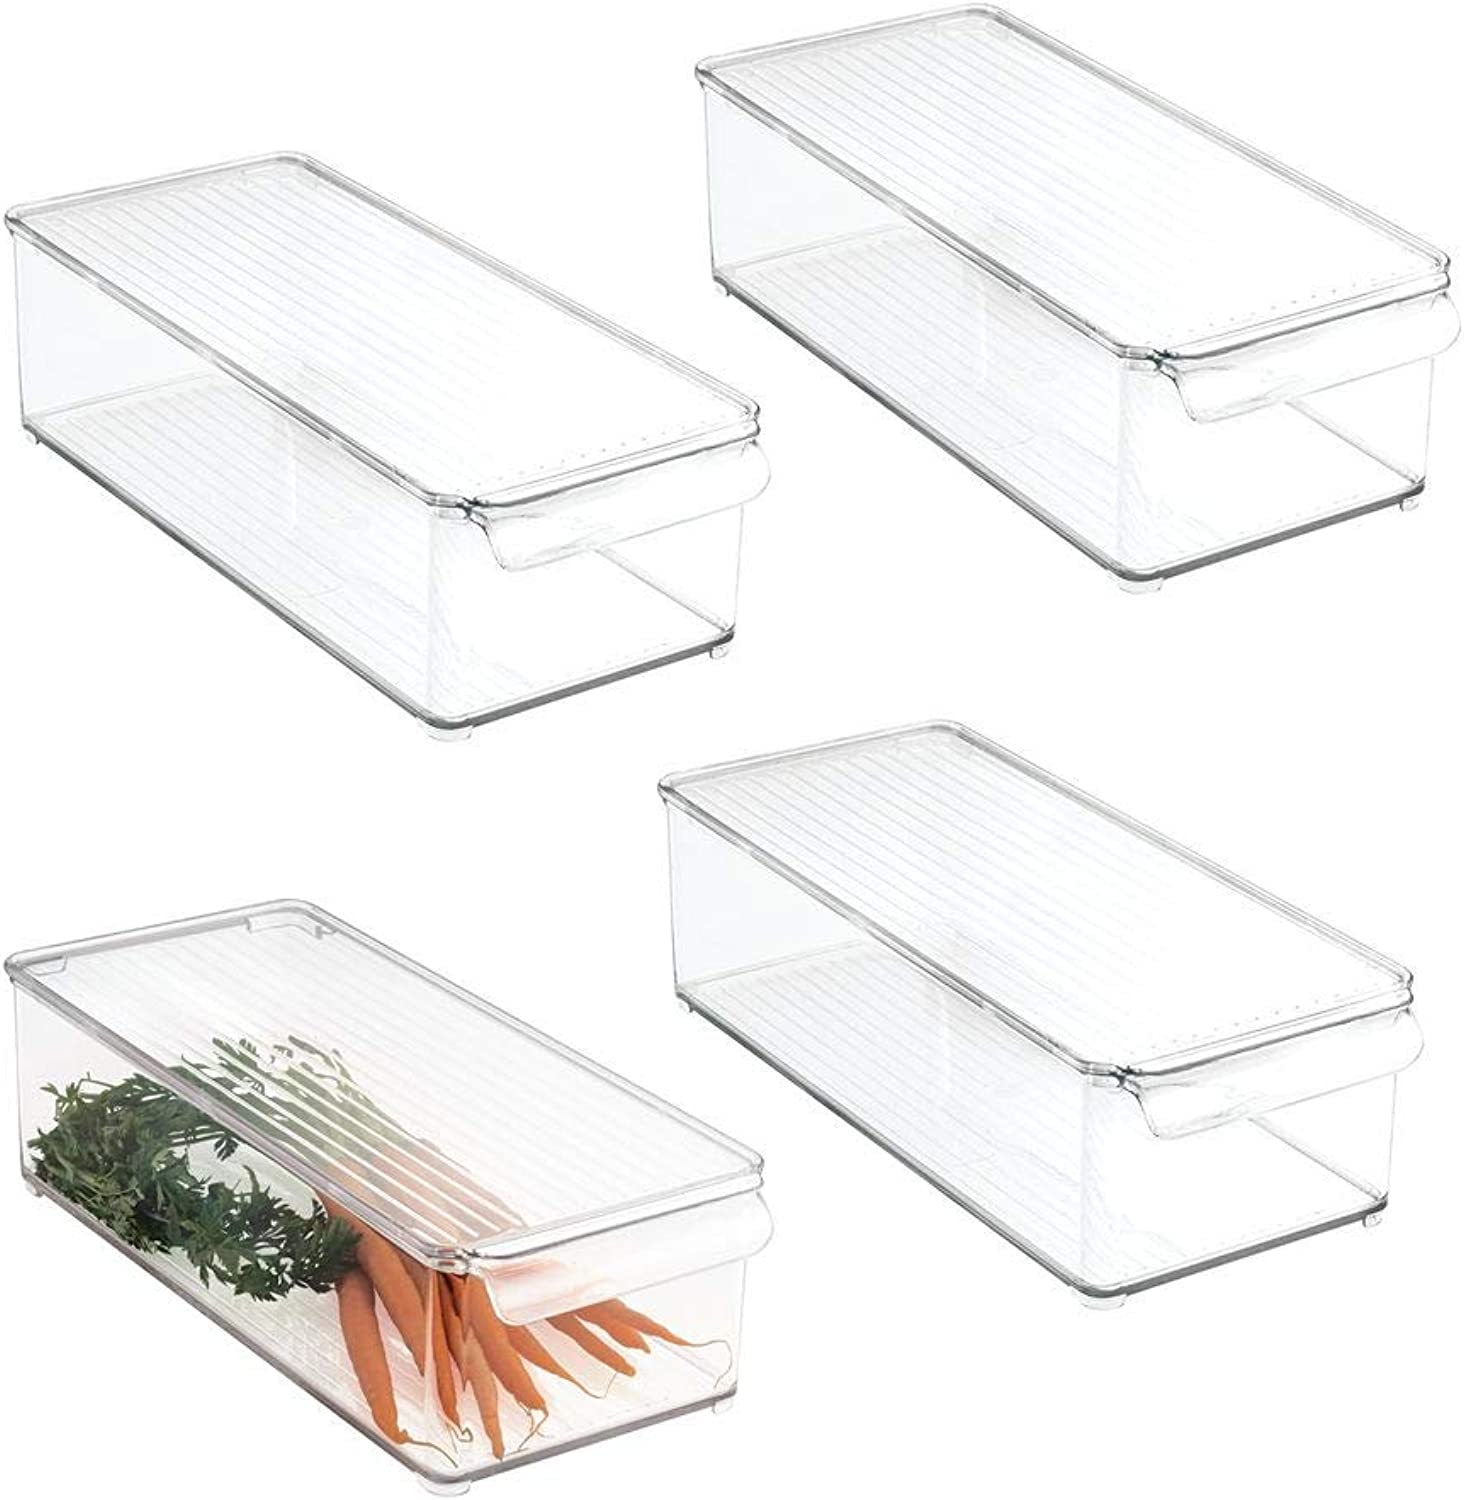 MDesign Plastic Food Storage Container Bin with Lid and Handle - for Kitchen, Pantry, Cabinet, Fridge Freezer - Organizer for Snacks, Produce, Vegetables, Pasta - 4 Pack, Clear